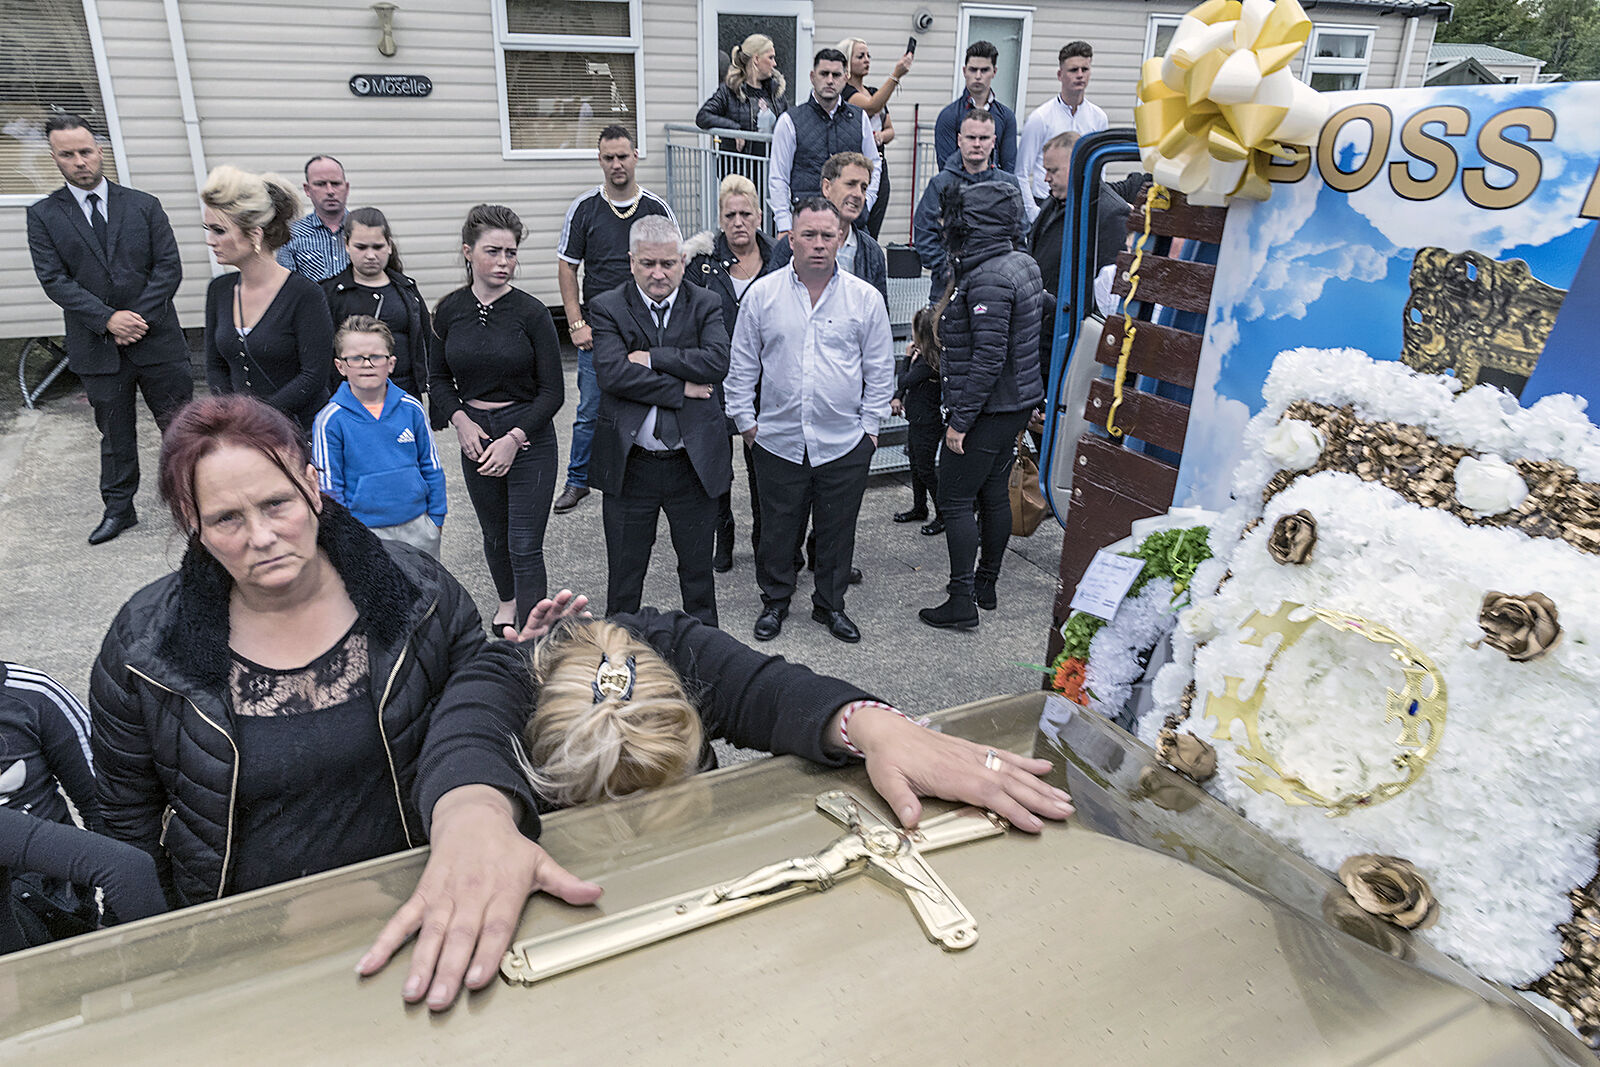 Wife at her late husband's coffin, Limerick, Ireland 2019